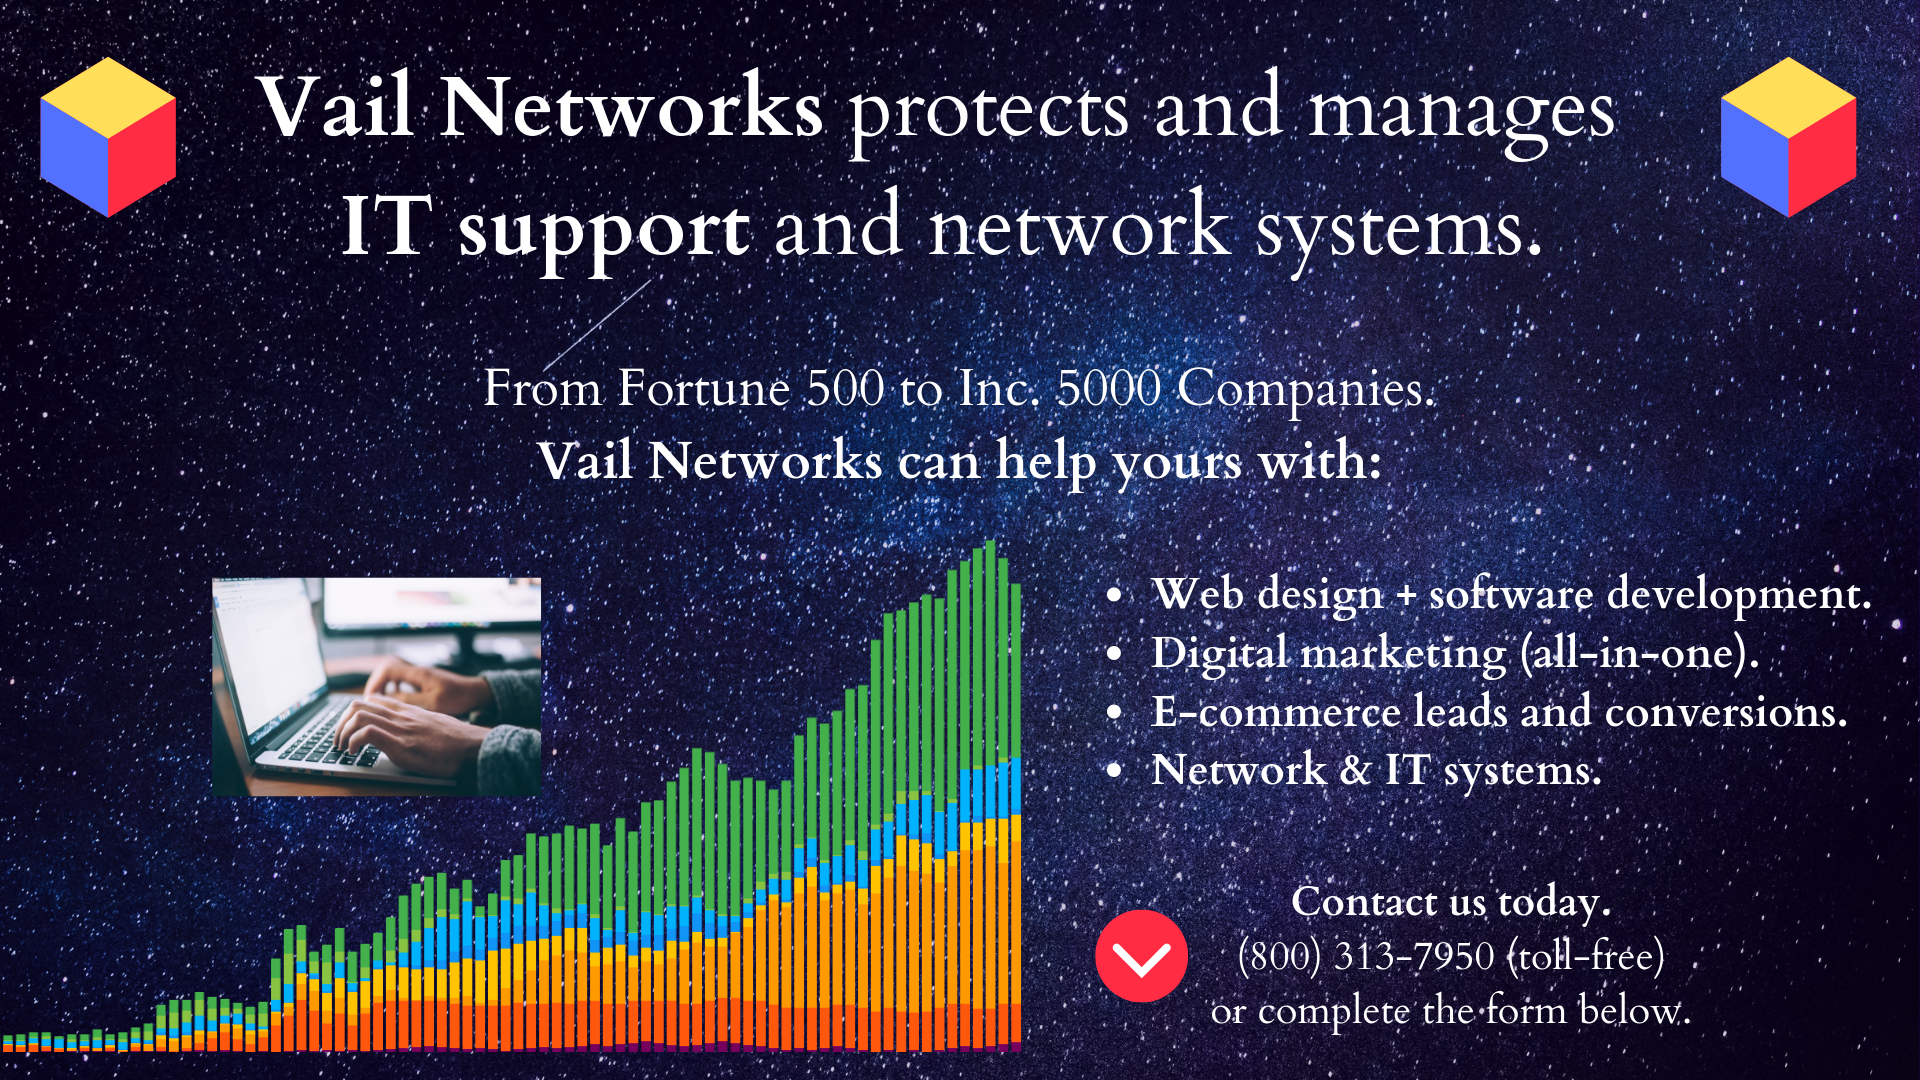 Company to help with IT Support and managed it networks and systems: vailnetworks.com